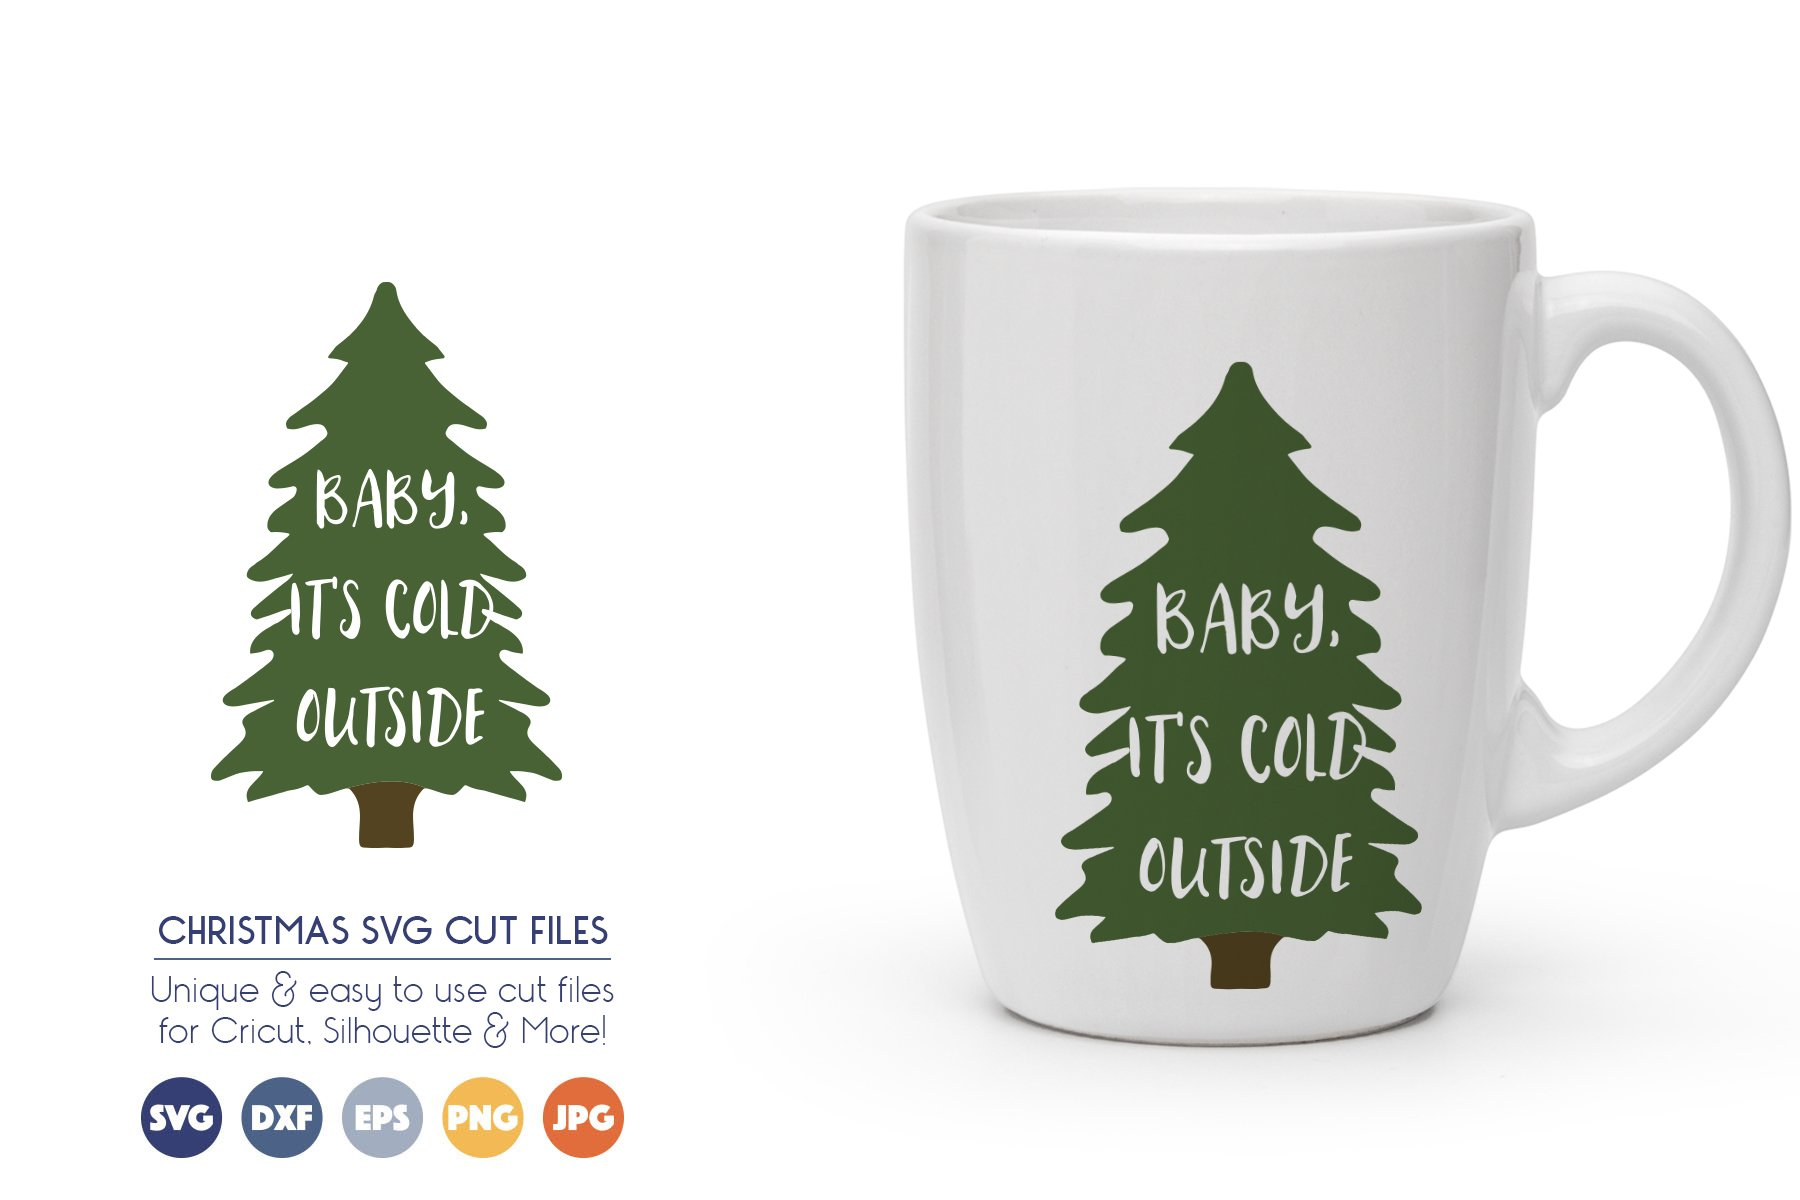 Baby, Its Cold Outside - Christmas Tree SVG Cut Files example image 1